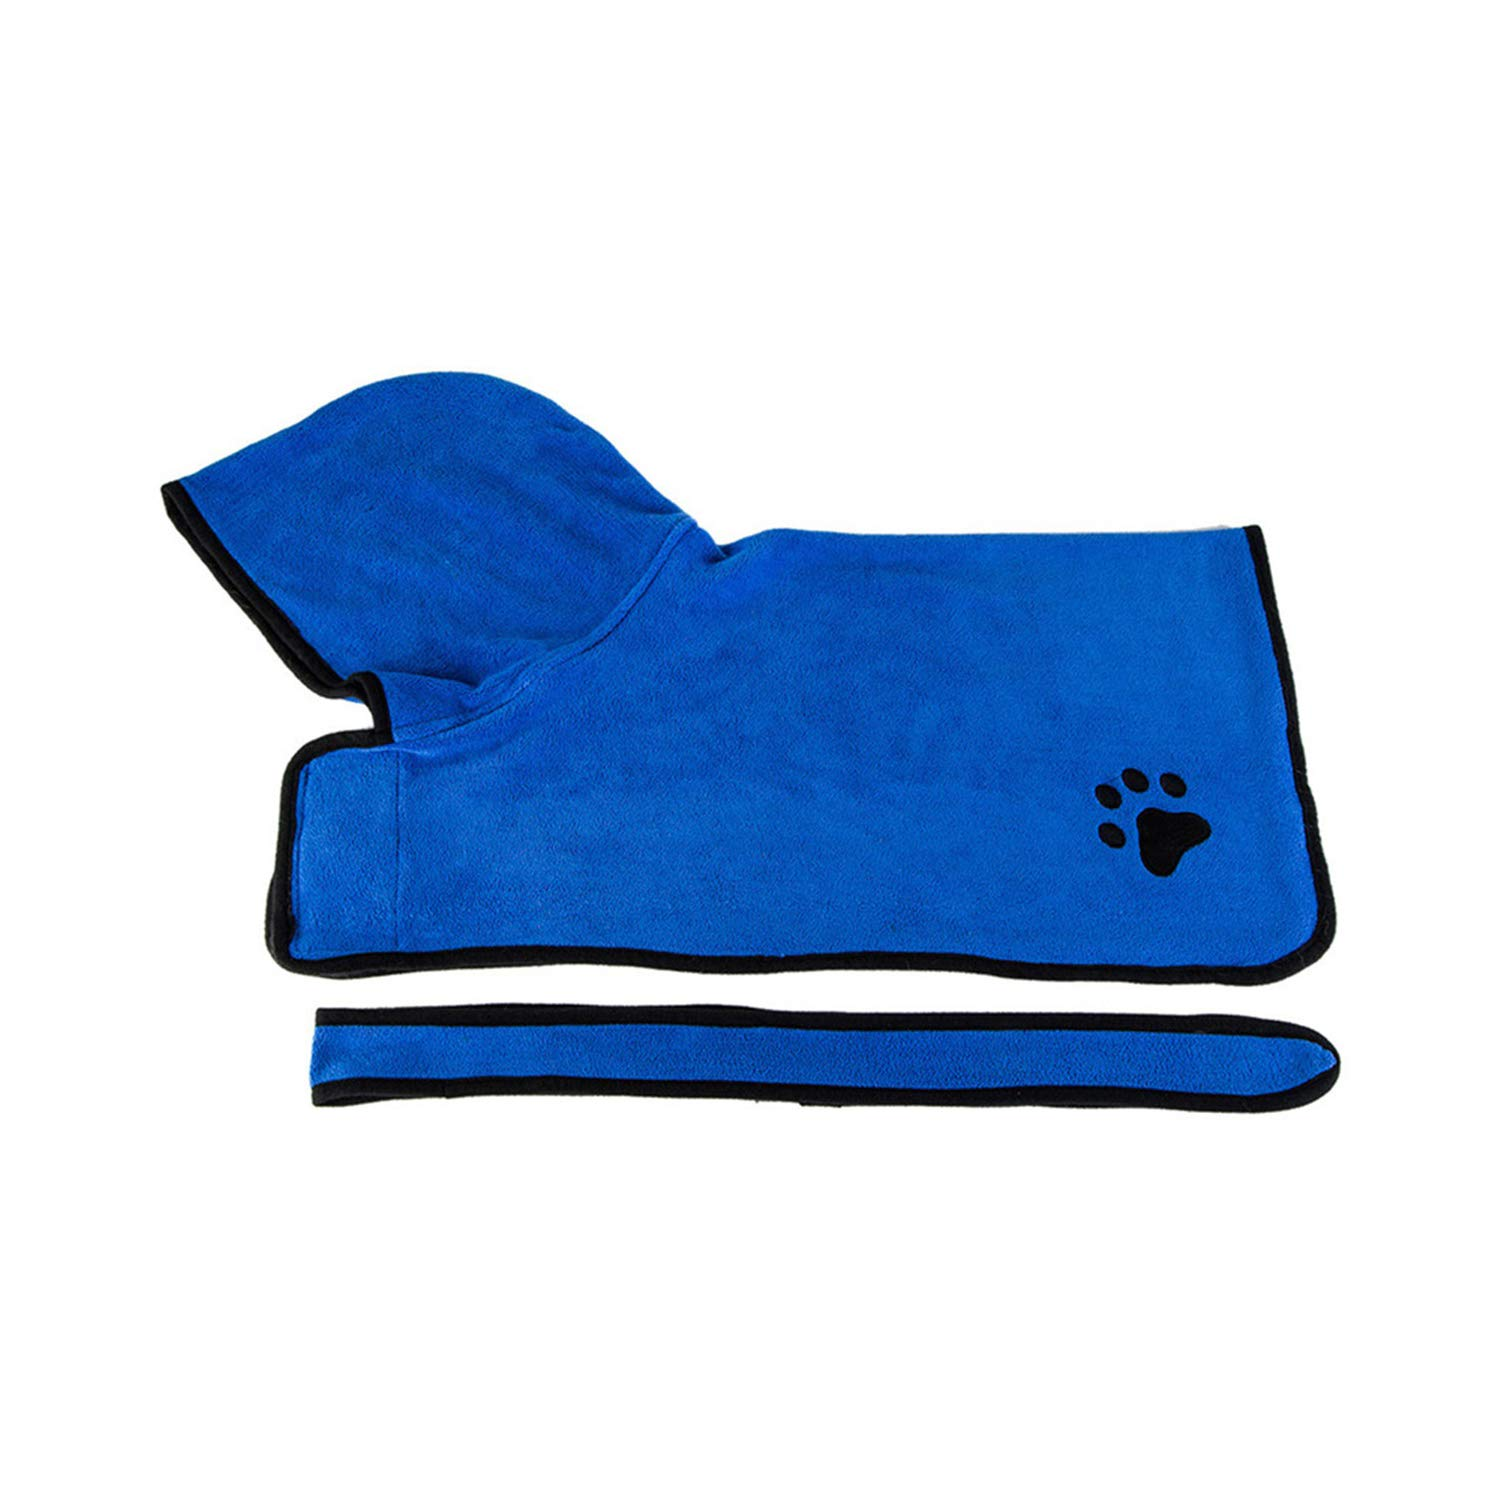 bluee M bluee M PEHTEN bluee Brown Towels Absorbent Dog Towel Bathrobe Cat Bath Bathroom Hair Grooming Drying Towels for Large Dogs Puppy Pet Product bluee M